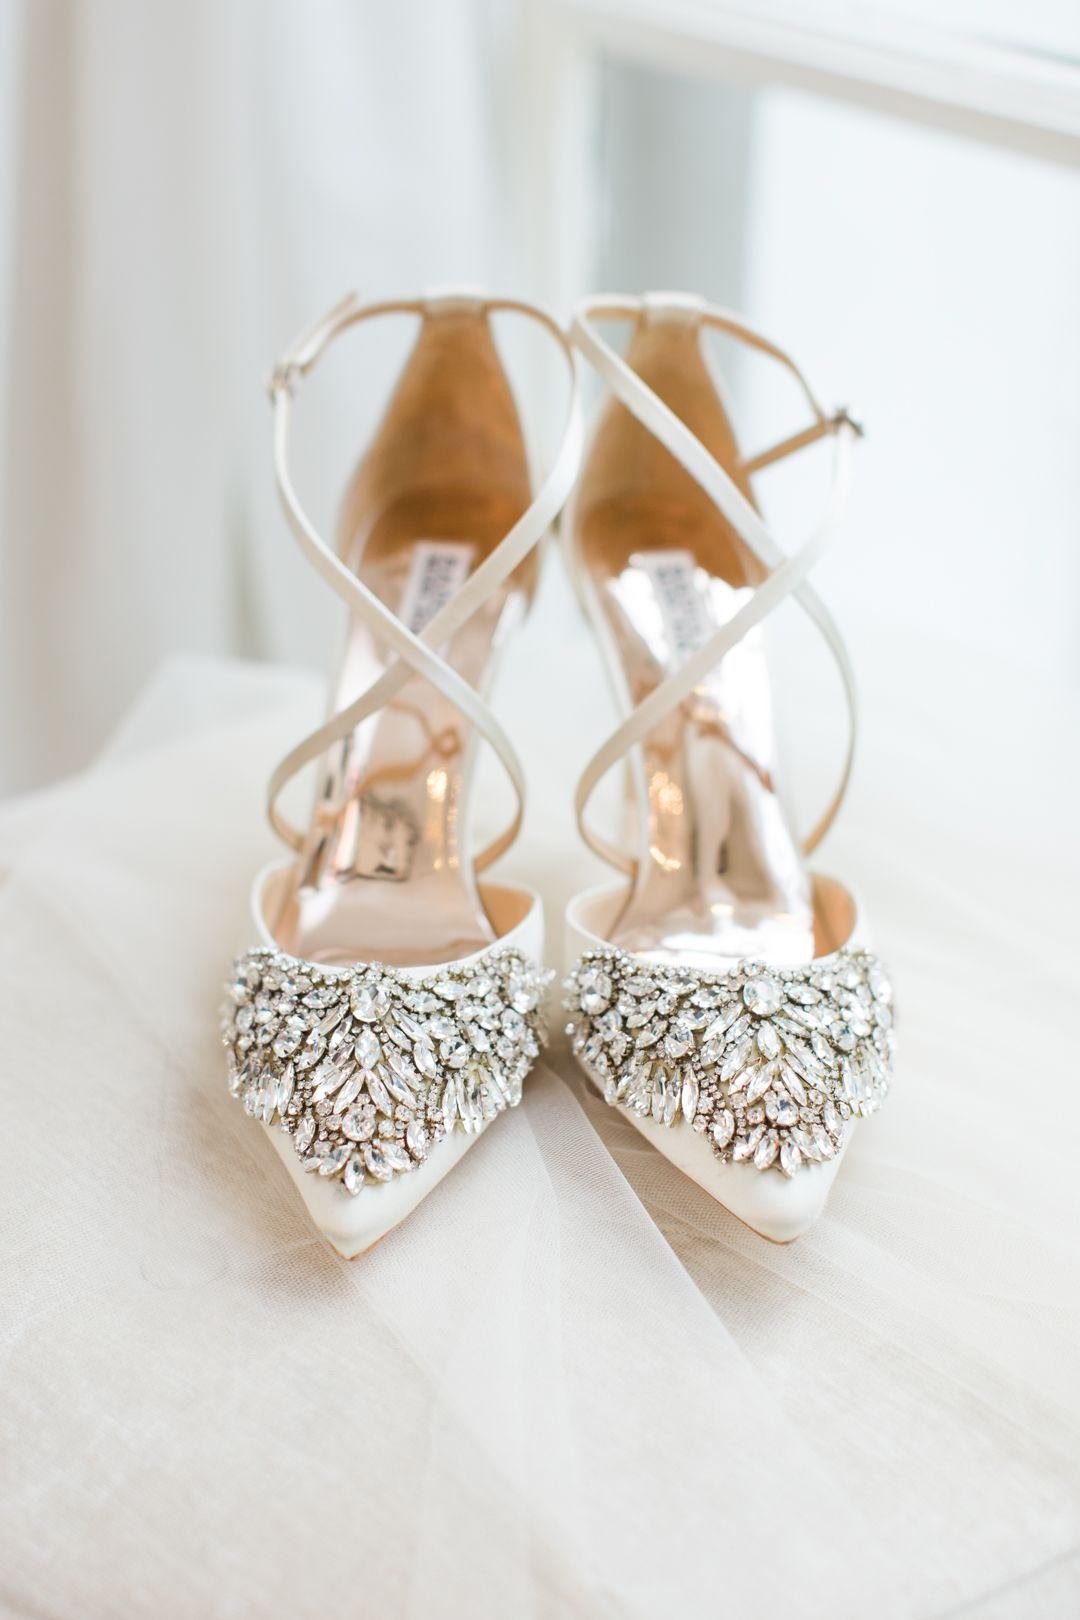 Badgley Mischka Harlene Bridal Shoes Silver Bridal Shoes Badgley Mischka Shoes Wedding Glitter Wedding Shoes